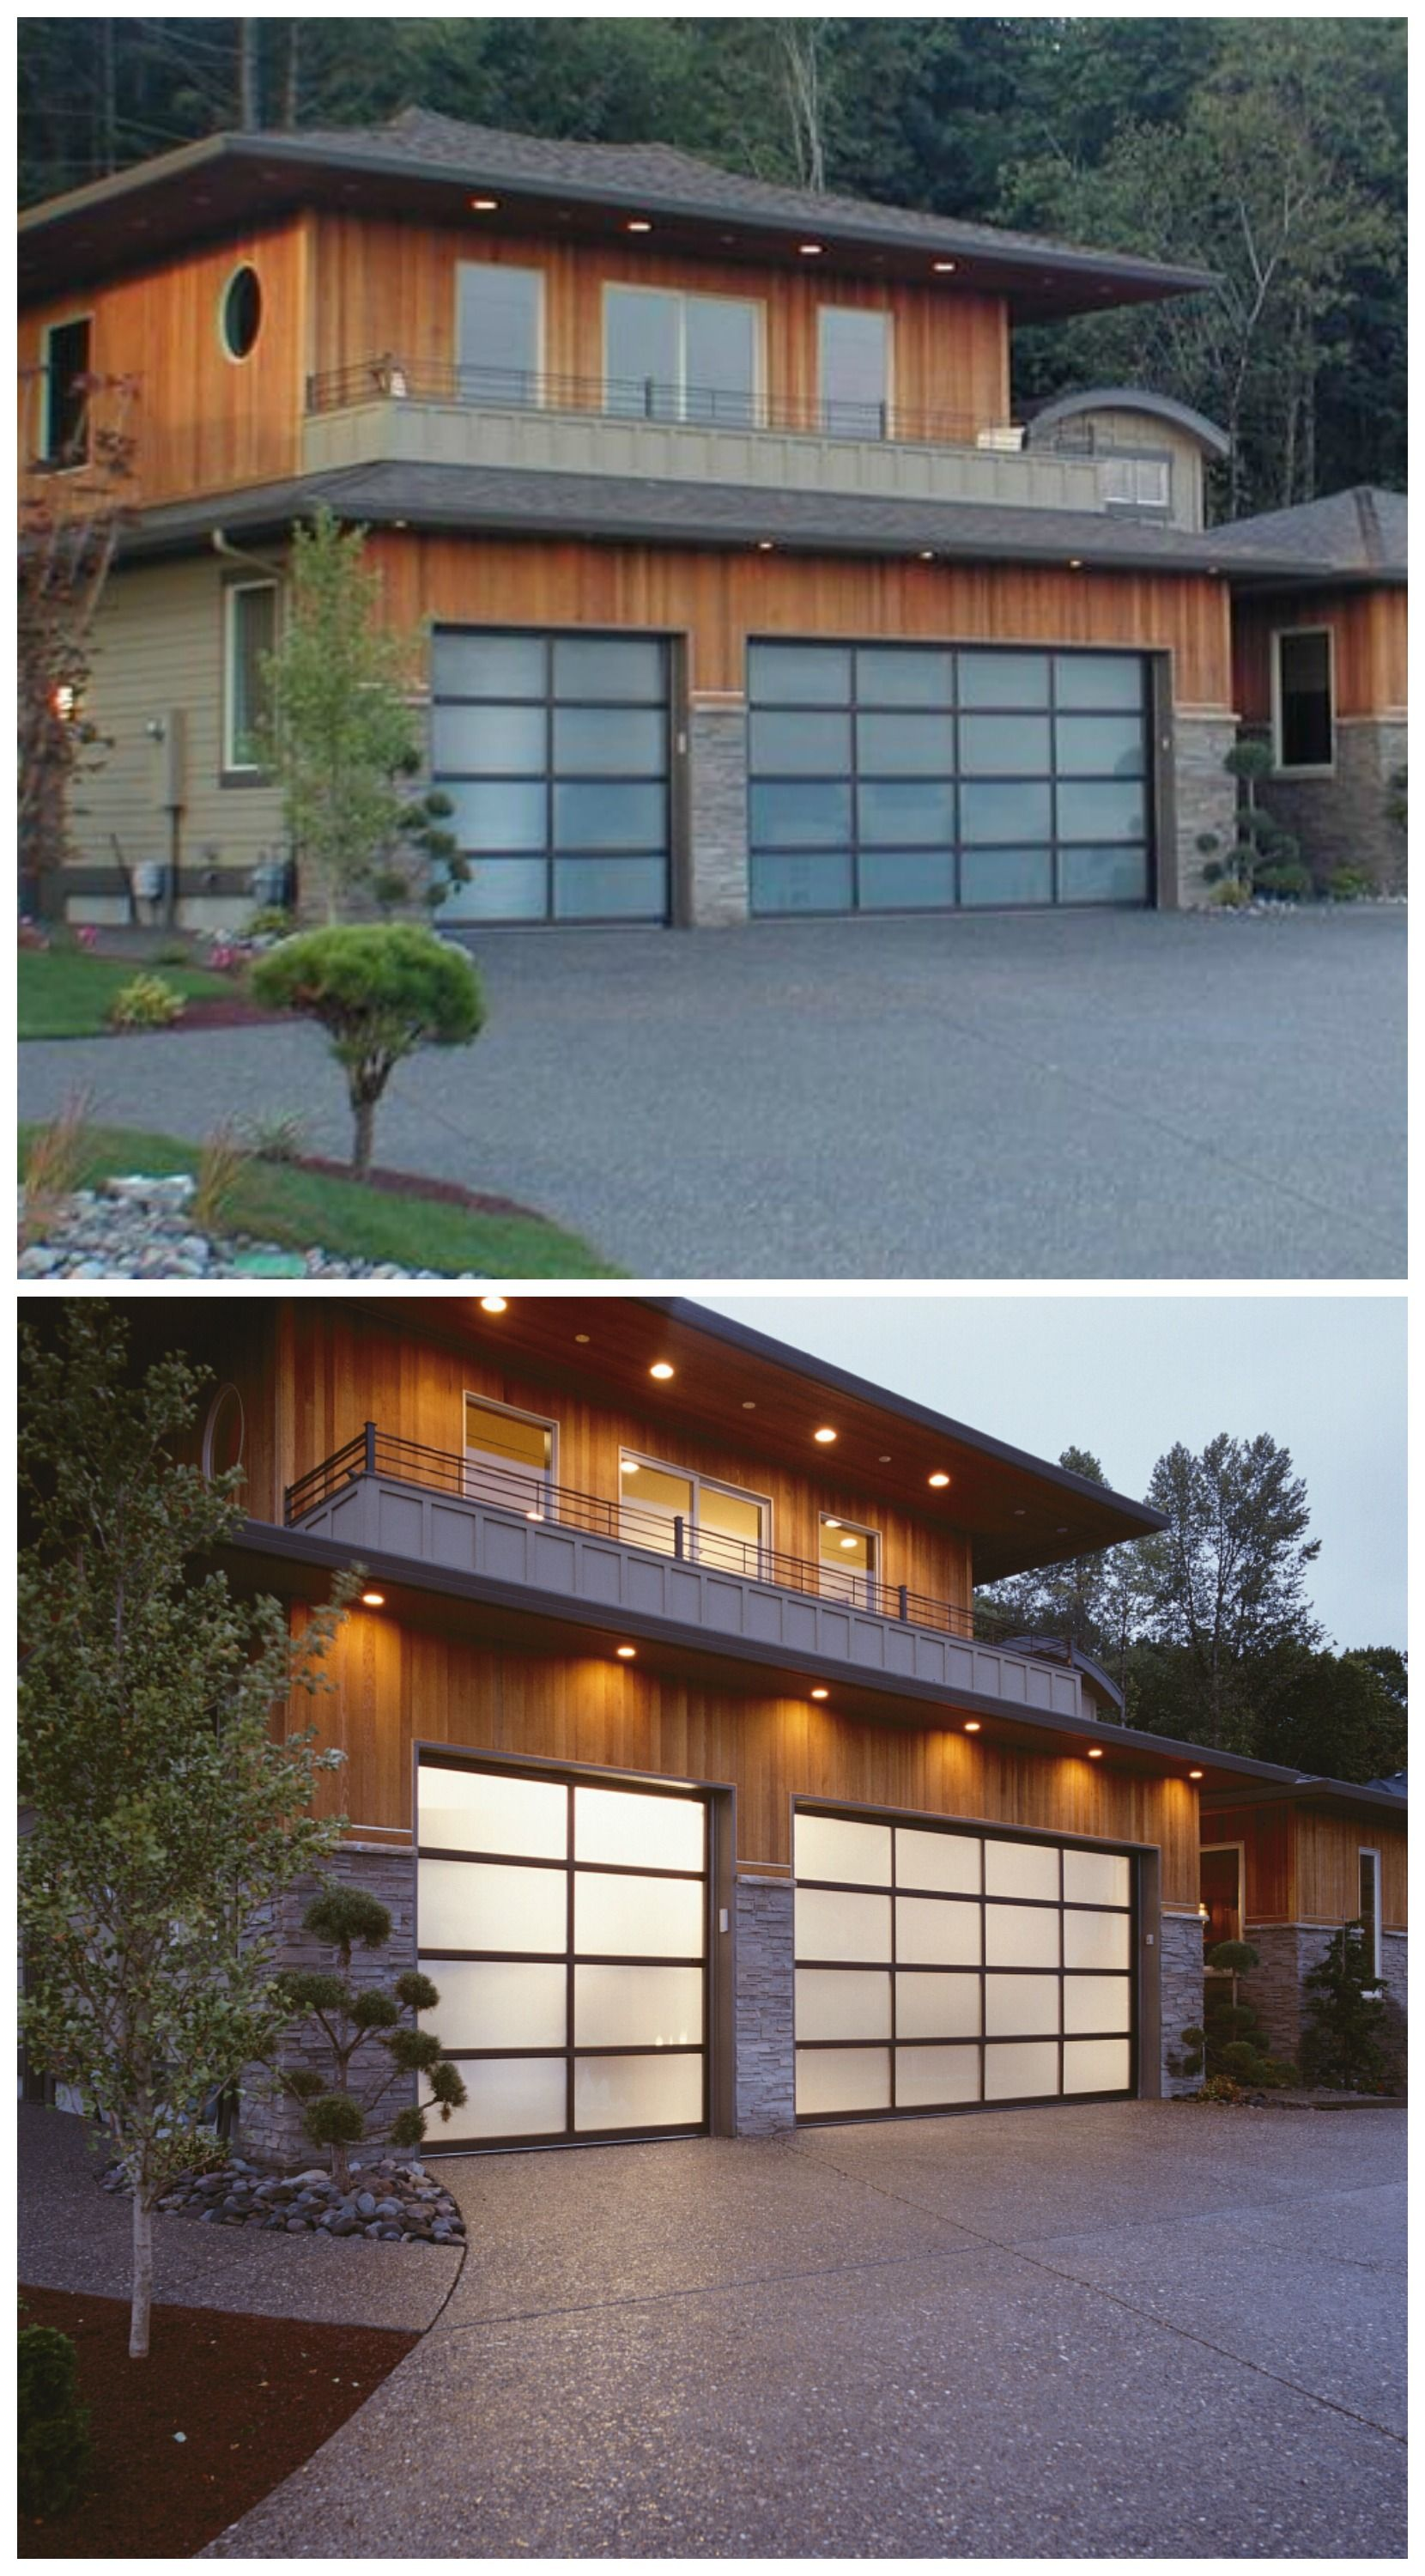 Clopay S Avante Collection Gl Garage Door Is A Chameleon Changing Its Earance From Sleek Opaque During The Day To Glow In Dark Focal